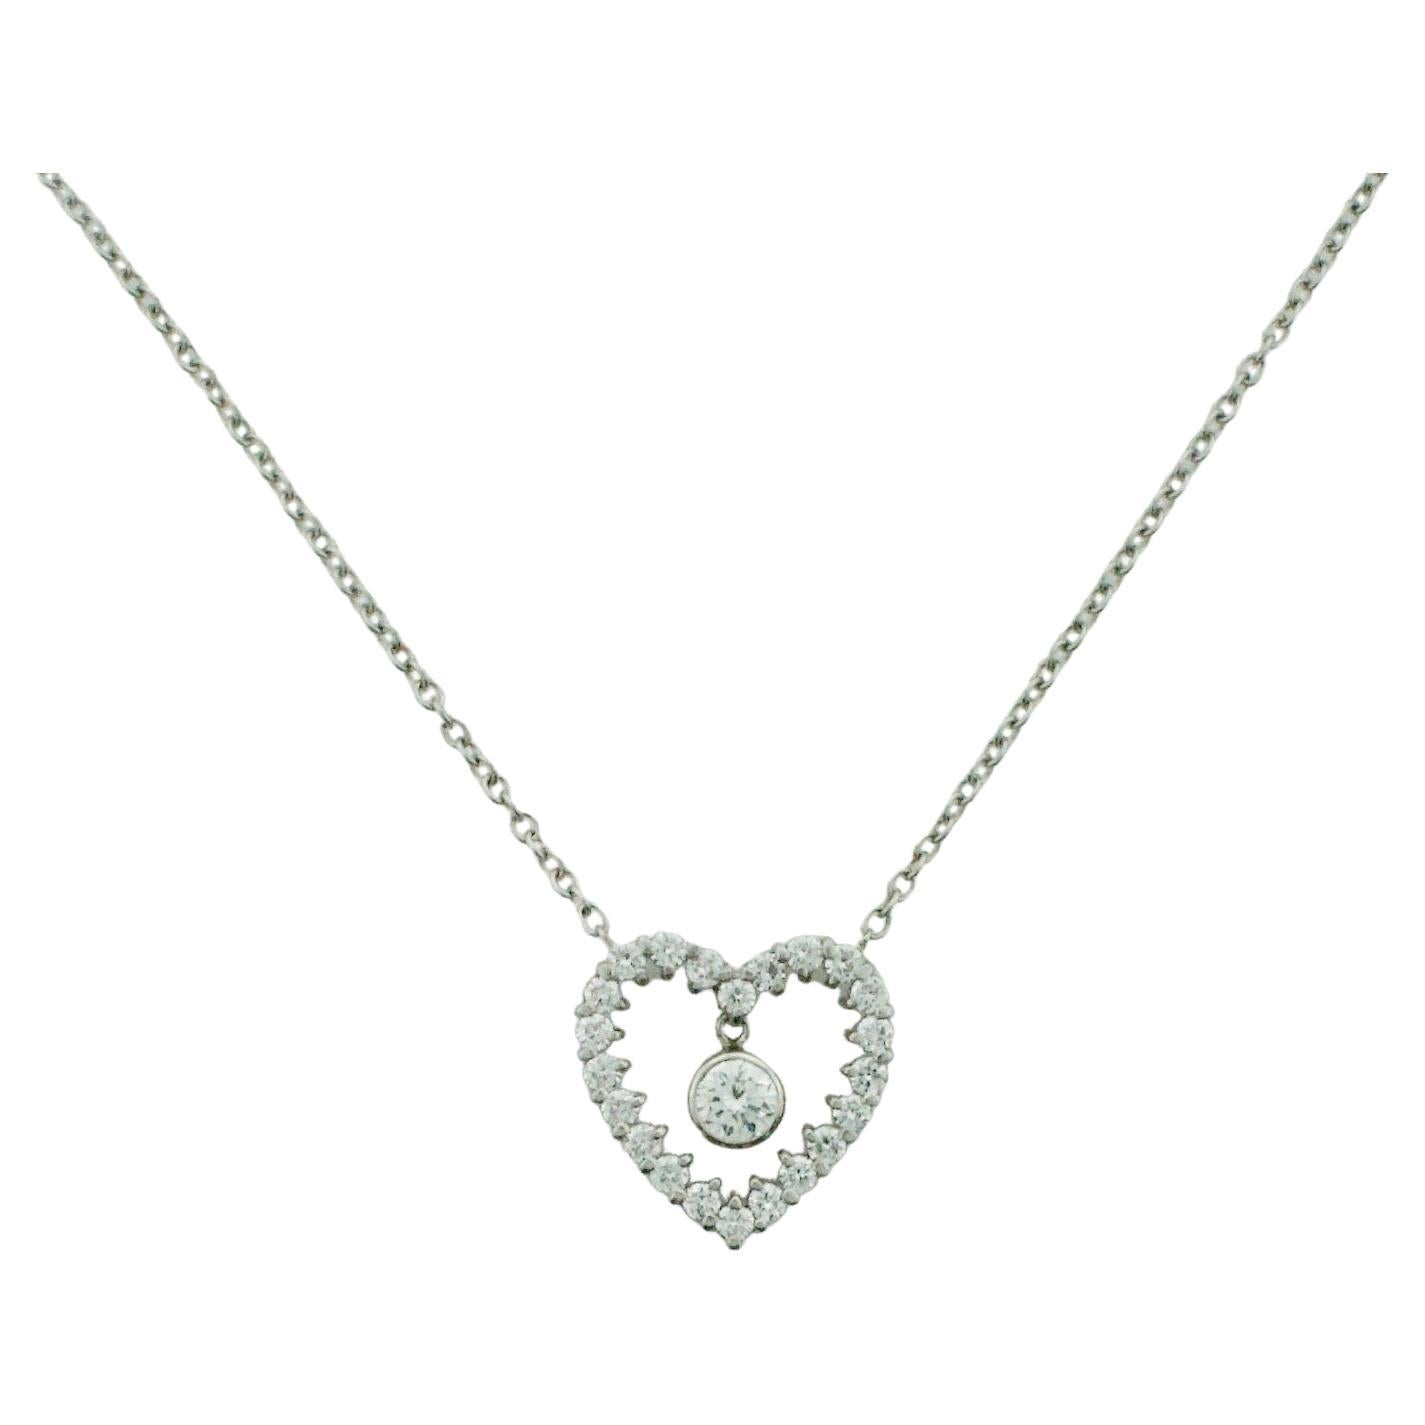 Platinum and Diamond Heart Necklace 1.05 Carats Total Weight